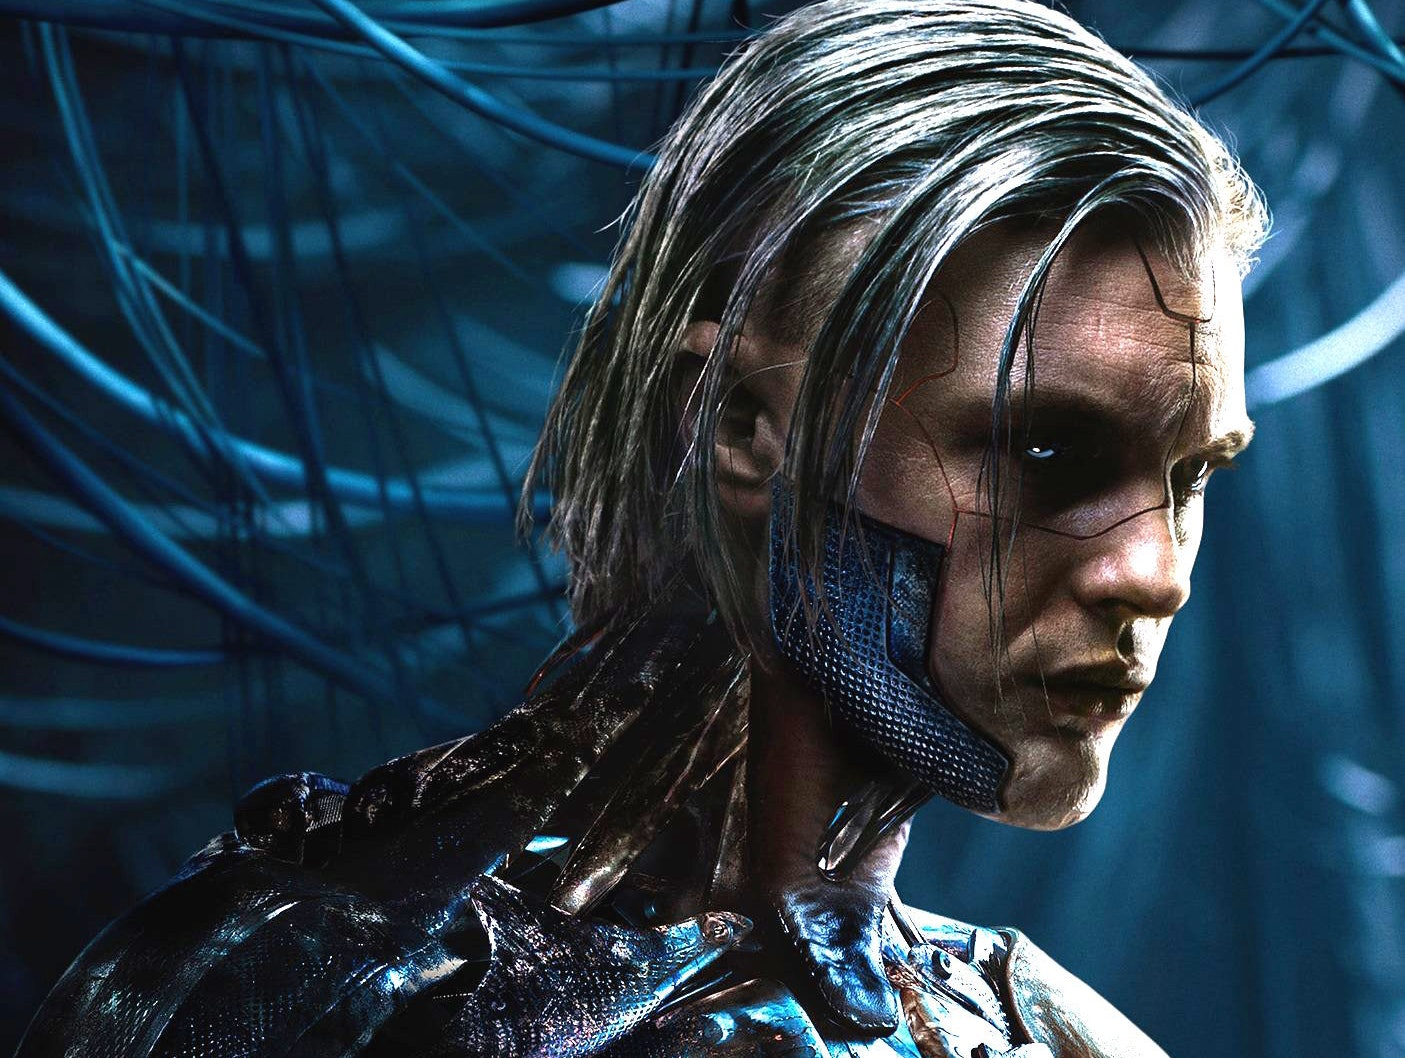 Why Major Wants to Beat The Shit Out of Hideous Kuze in 'Ghost in The Shell'